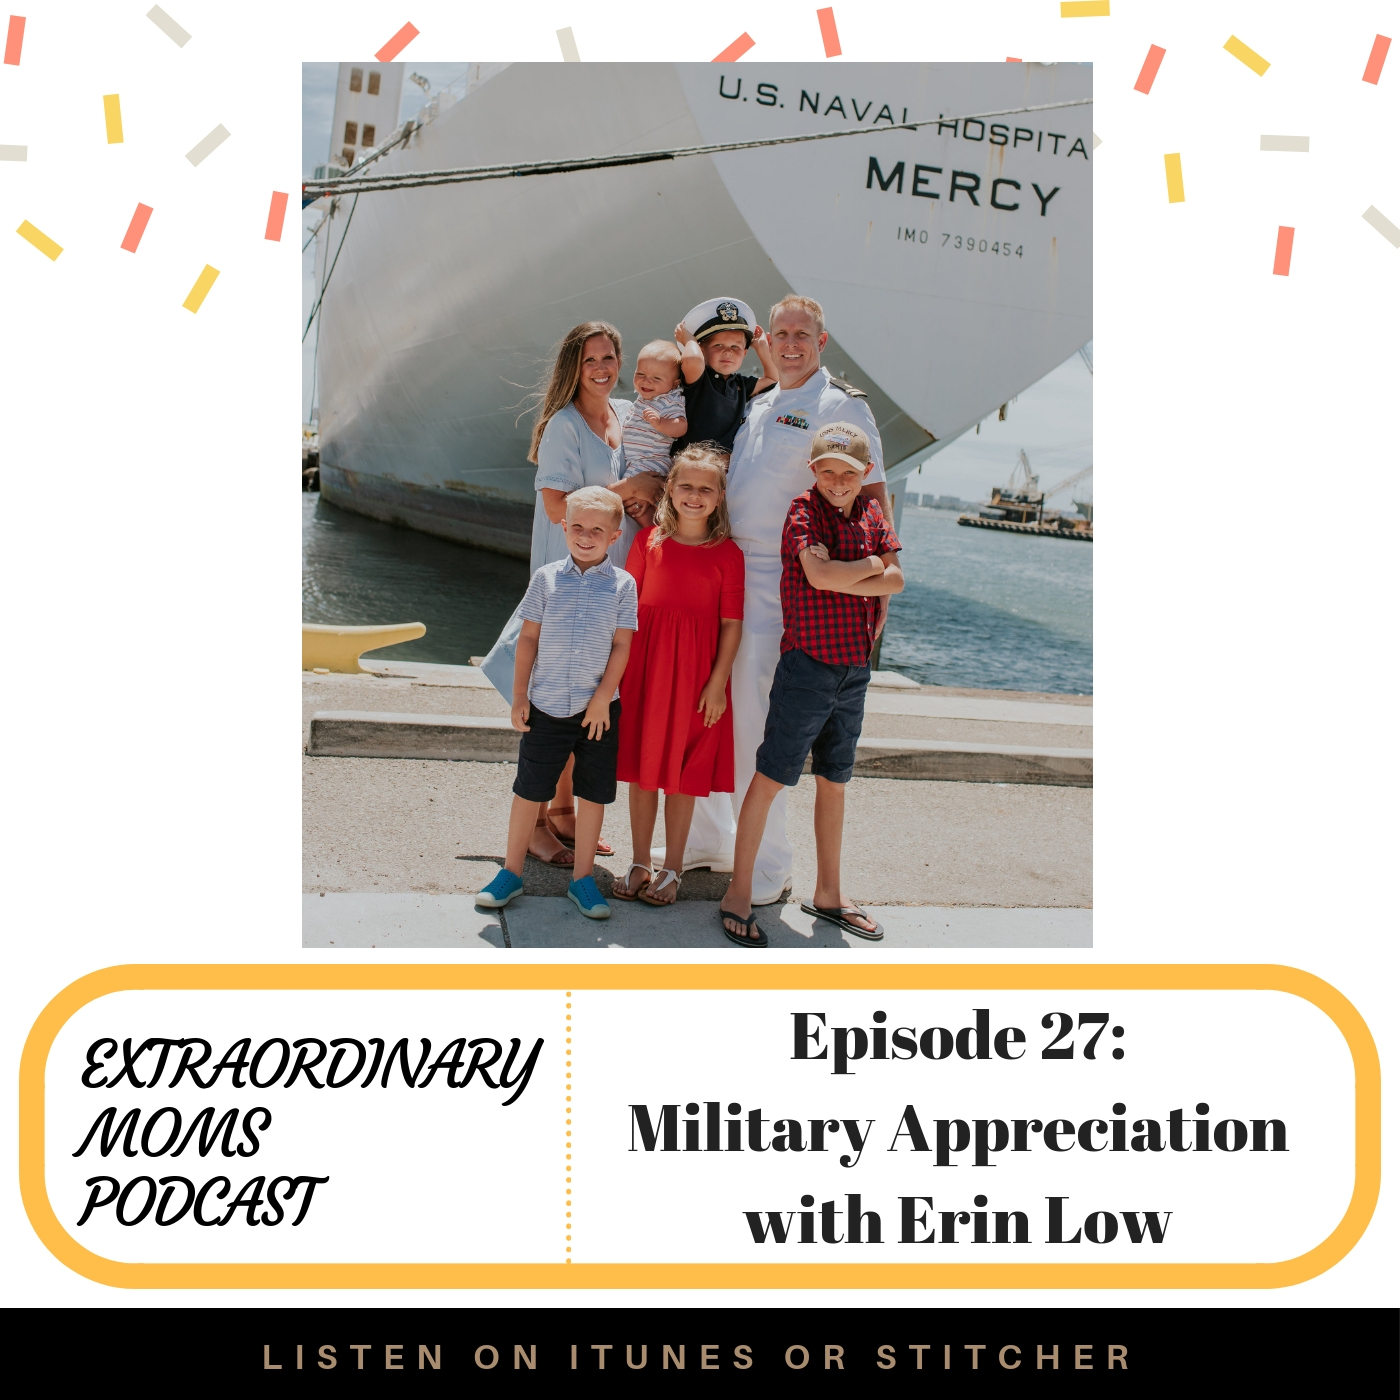 Extraordinary Moms Podcast